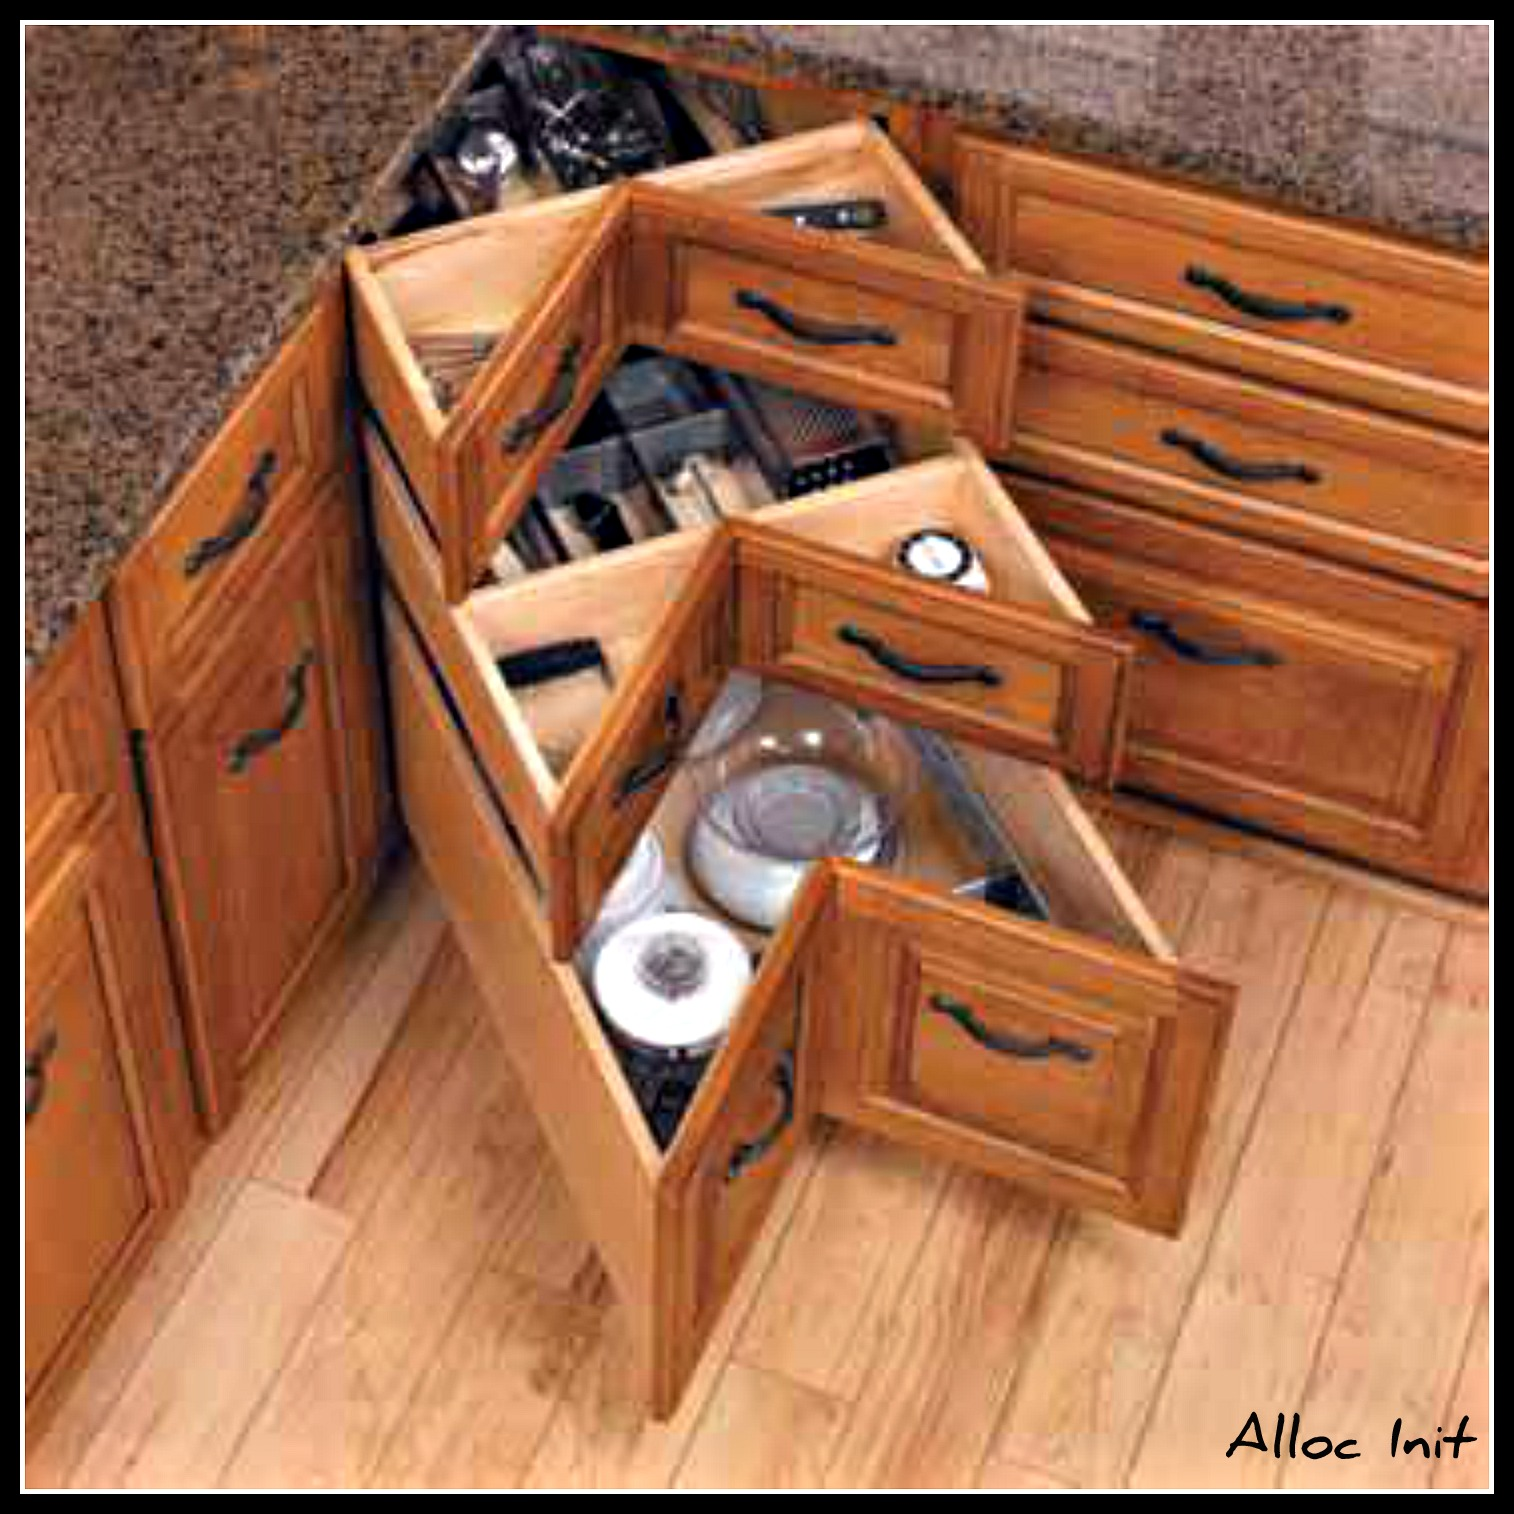 How To Build A Corner Kitchen Cabinet Build Corner Kitchen Cabinet Plans Diy Wooden Rocking